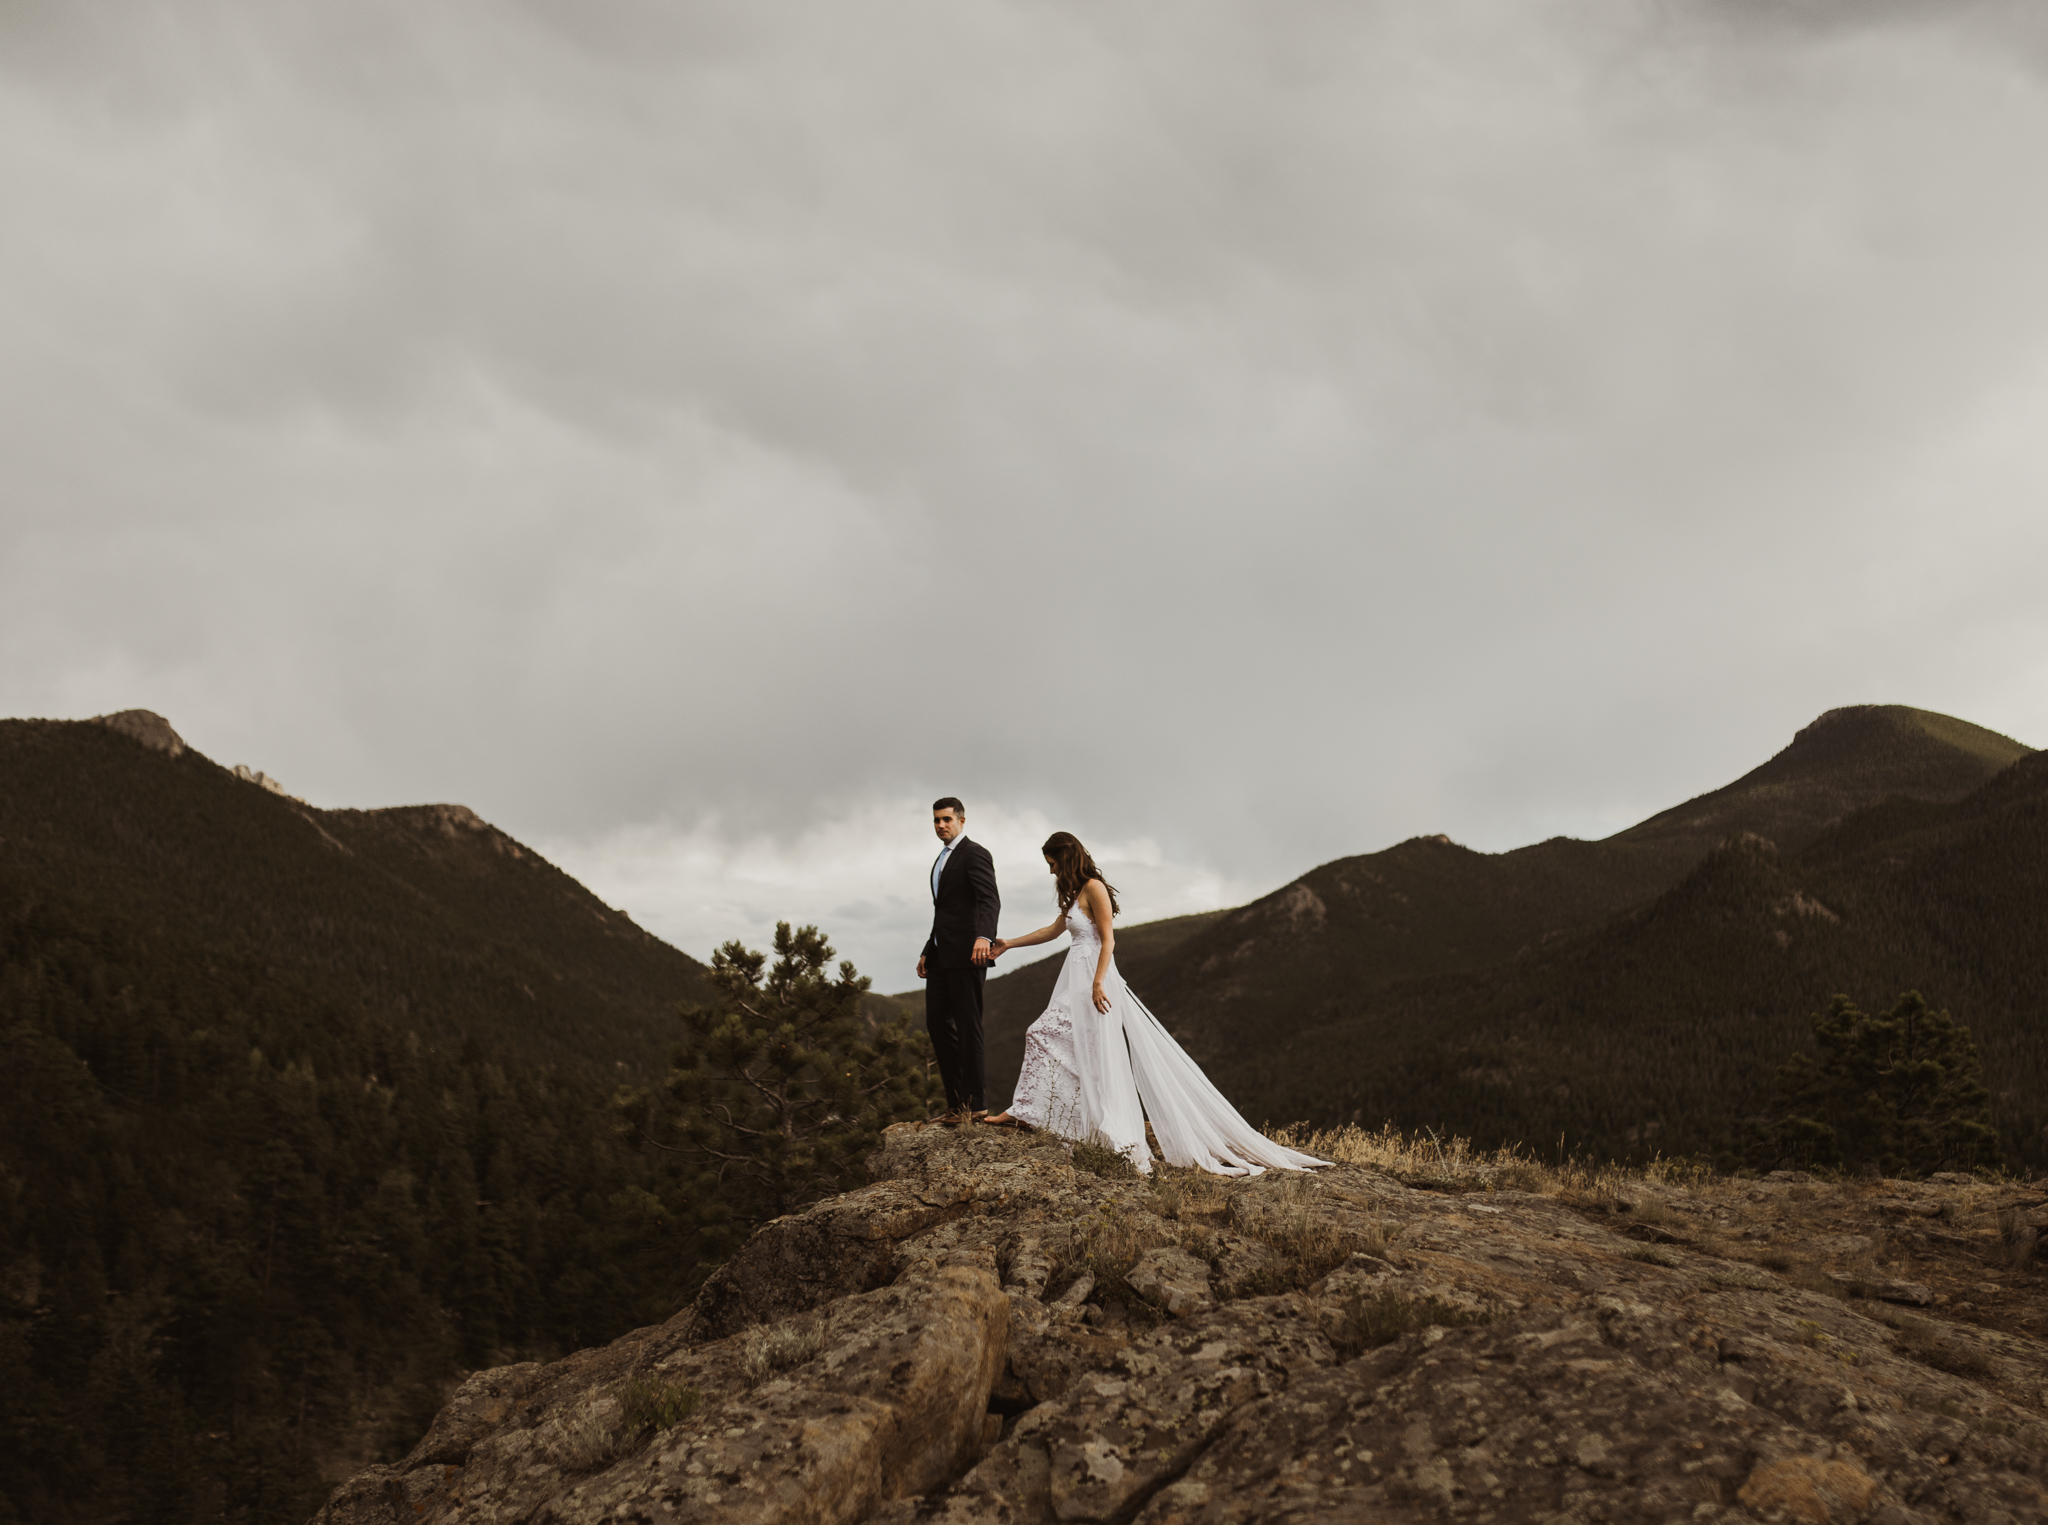 ©Isaiah + Taylor Photography - Estes National Park Adventure Elopement, Colorado Rockies-138.jpg